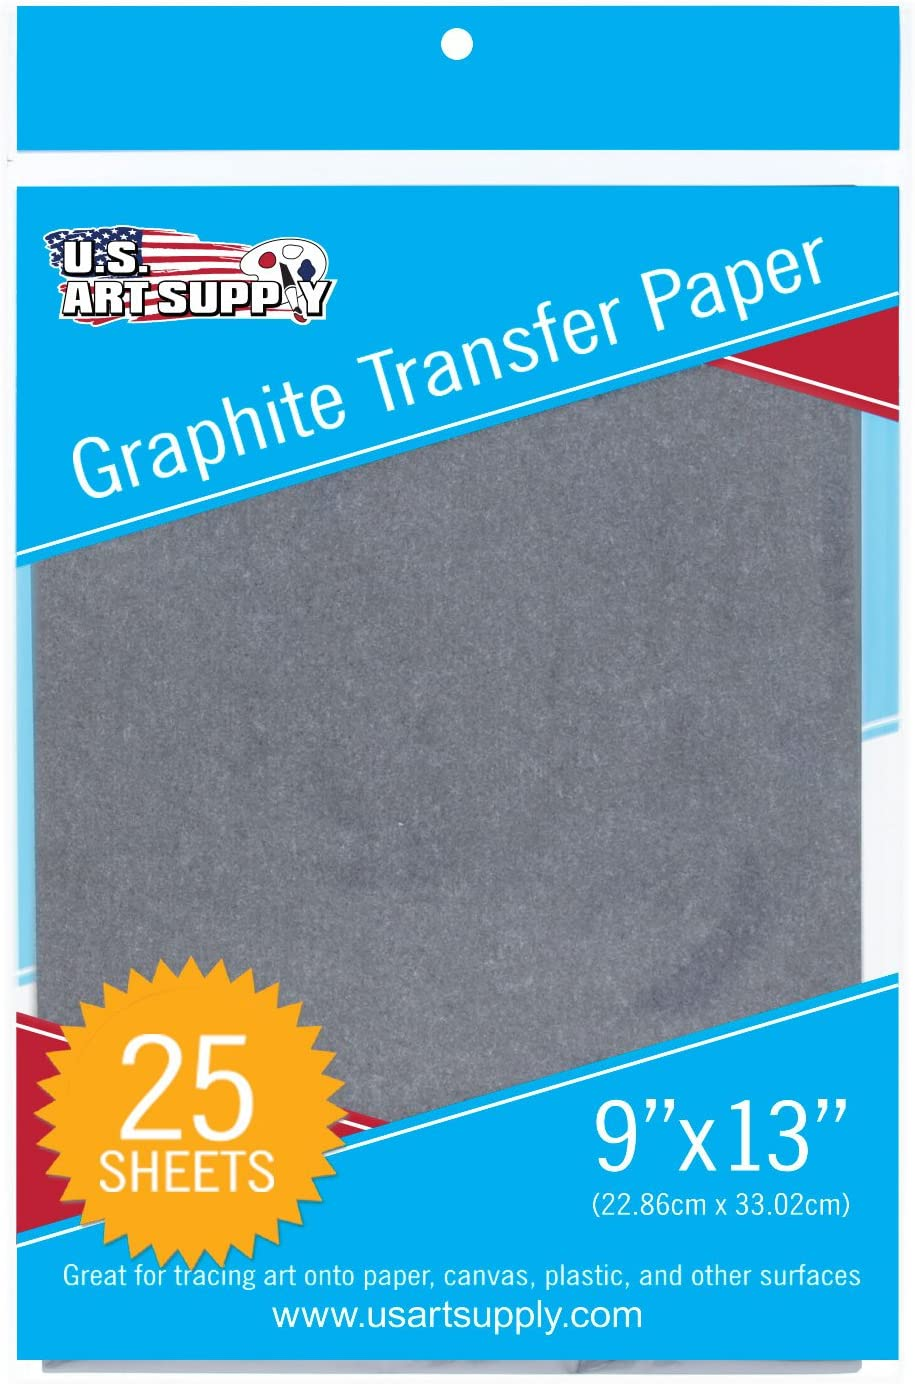 """U.S. Art Supply Graphite Carbon Transfer Paper 9"""" x 13"""" - 25 Sheets - Black Tracing Paper for All Art Surfaces"""